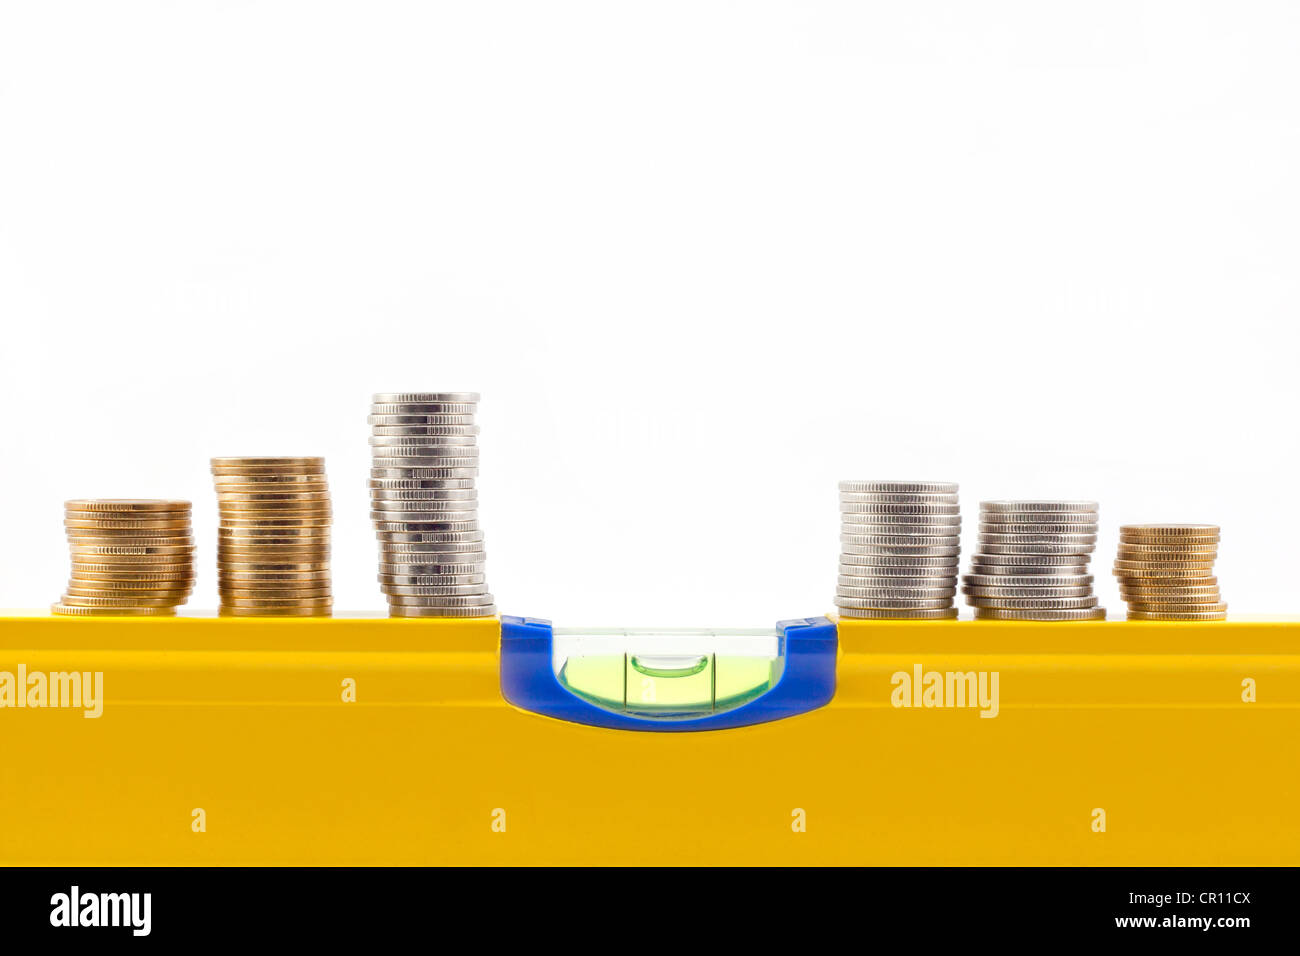 stability and change in the rate of money abstract on white background Stock Photo